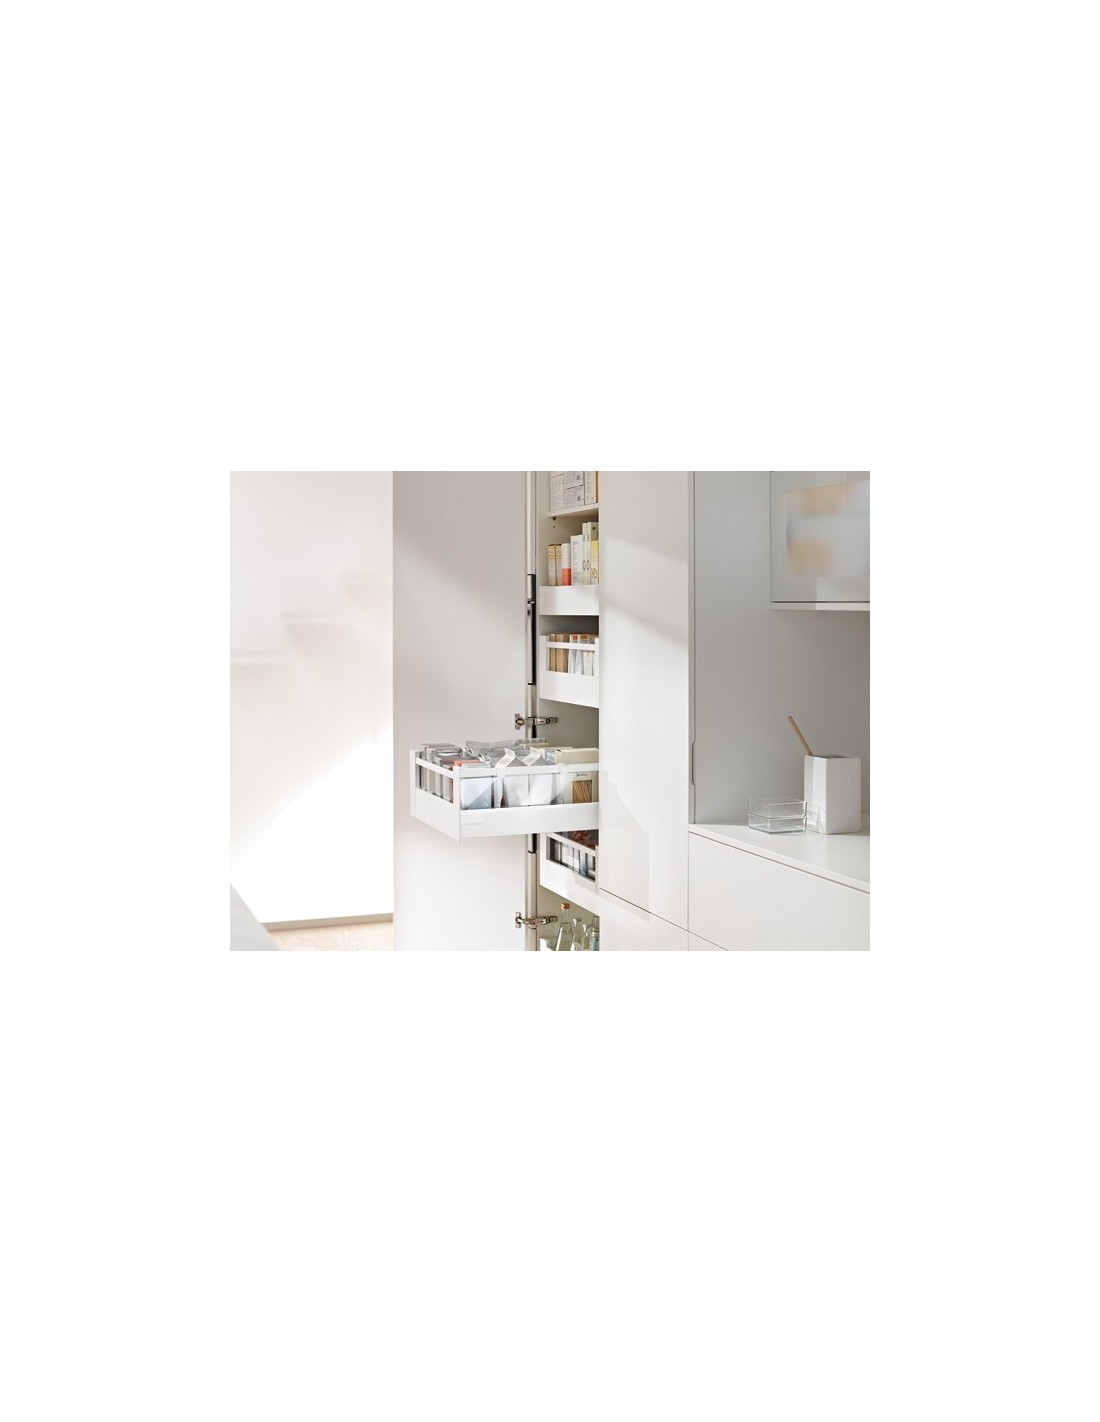 Silk white blum internal pan drawer set 450mm depth for Kitchen cabinets 450mm depth